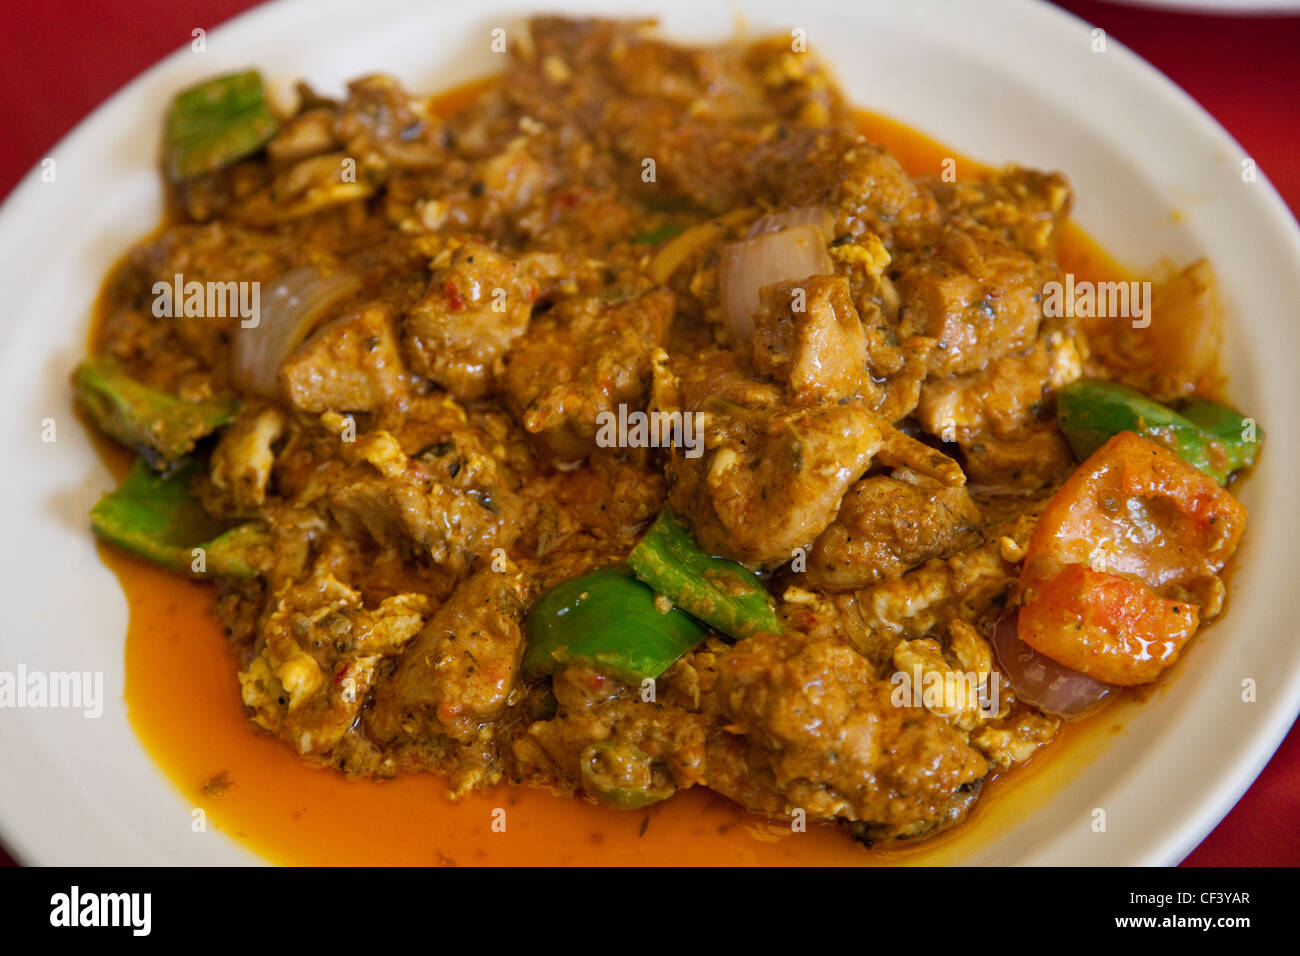 Chicken Jalfrezi Islamabad Pakistan Stock Photo Alamy